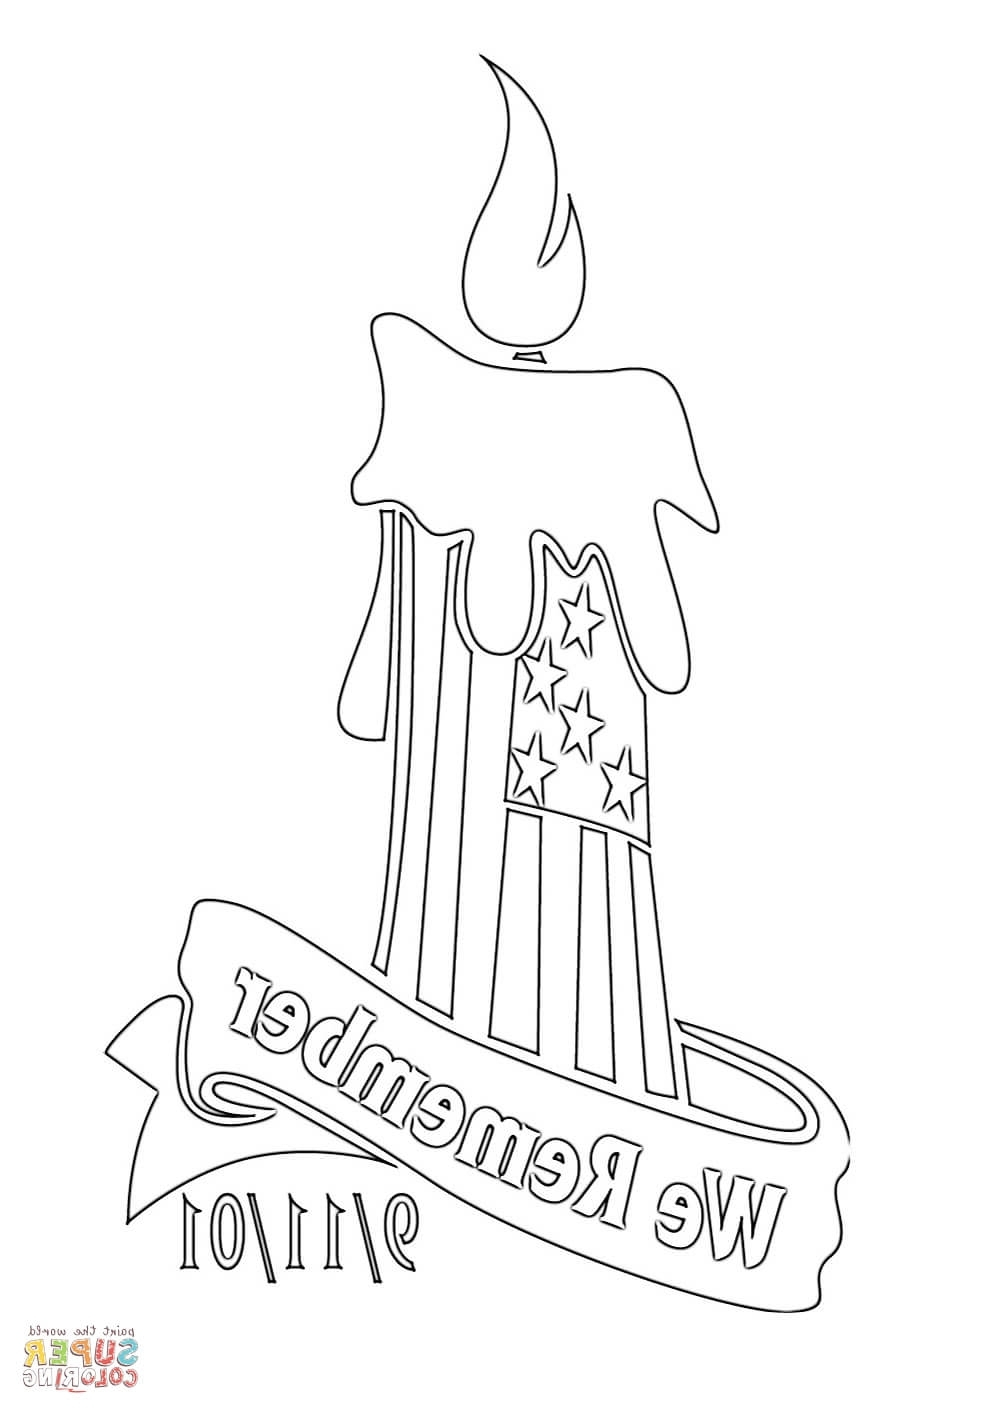 9 11 Coloring Pages September 11 Coloring Pages Crafted Here